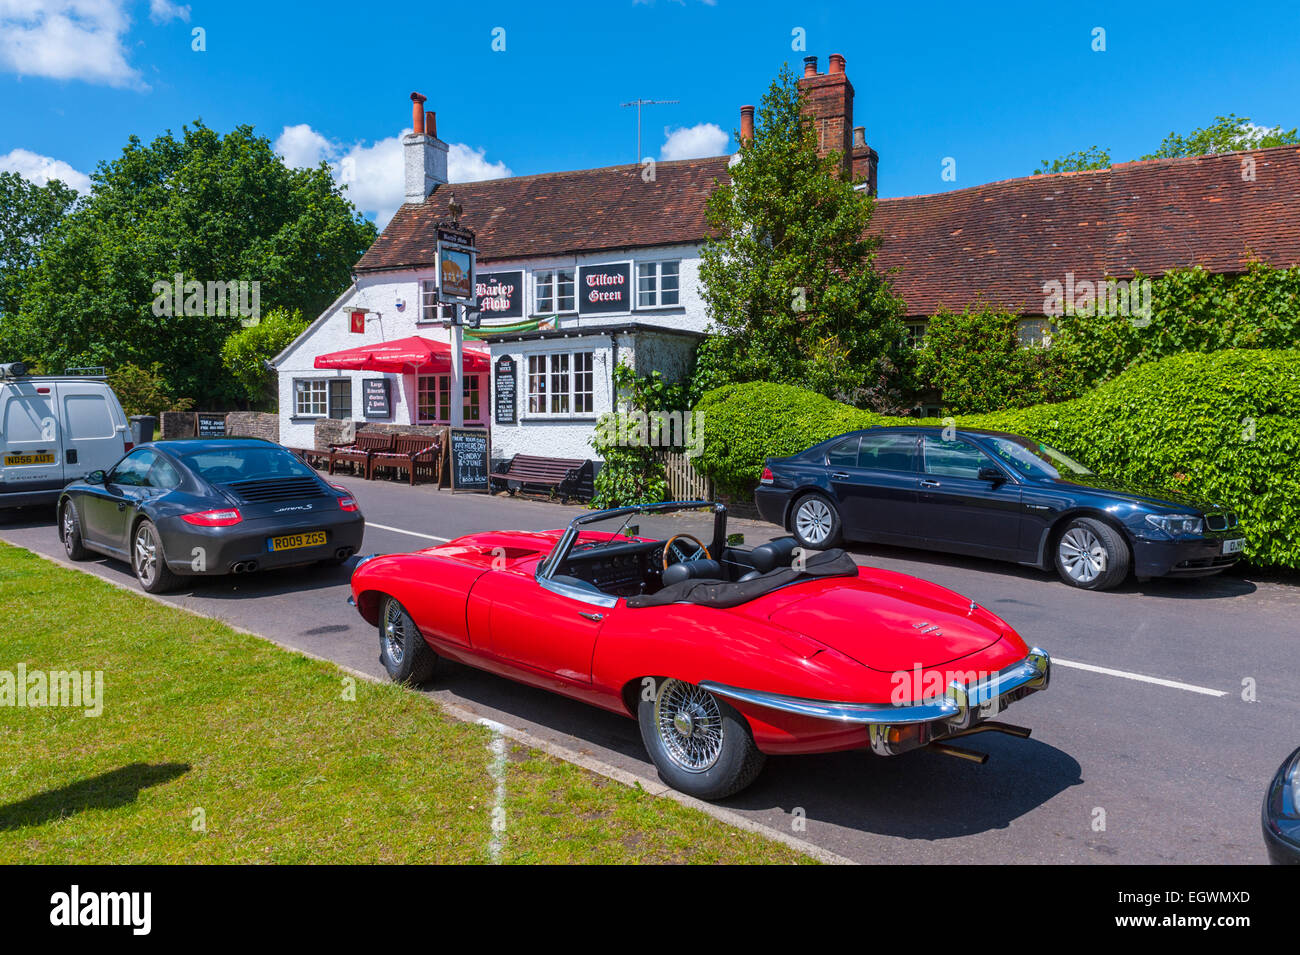 E Type jag parked outide of the Barley mow pub Tilford surrey. - Stock Image